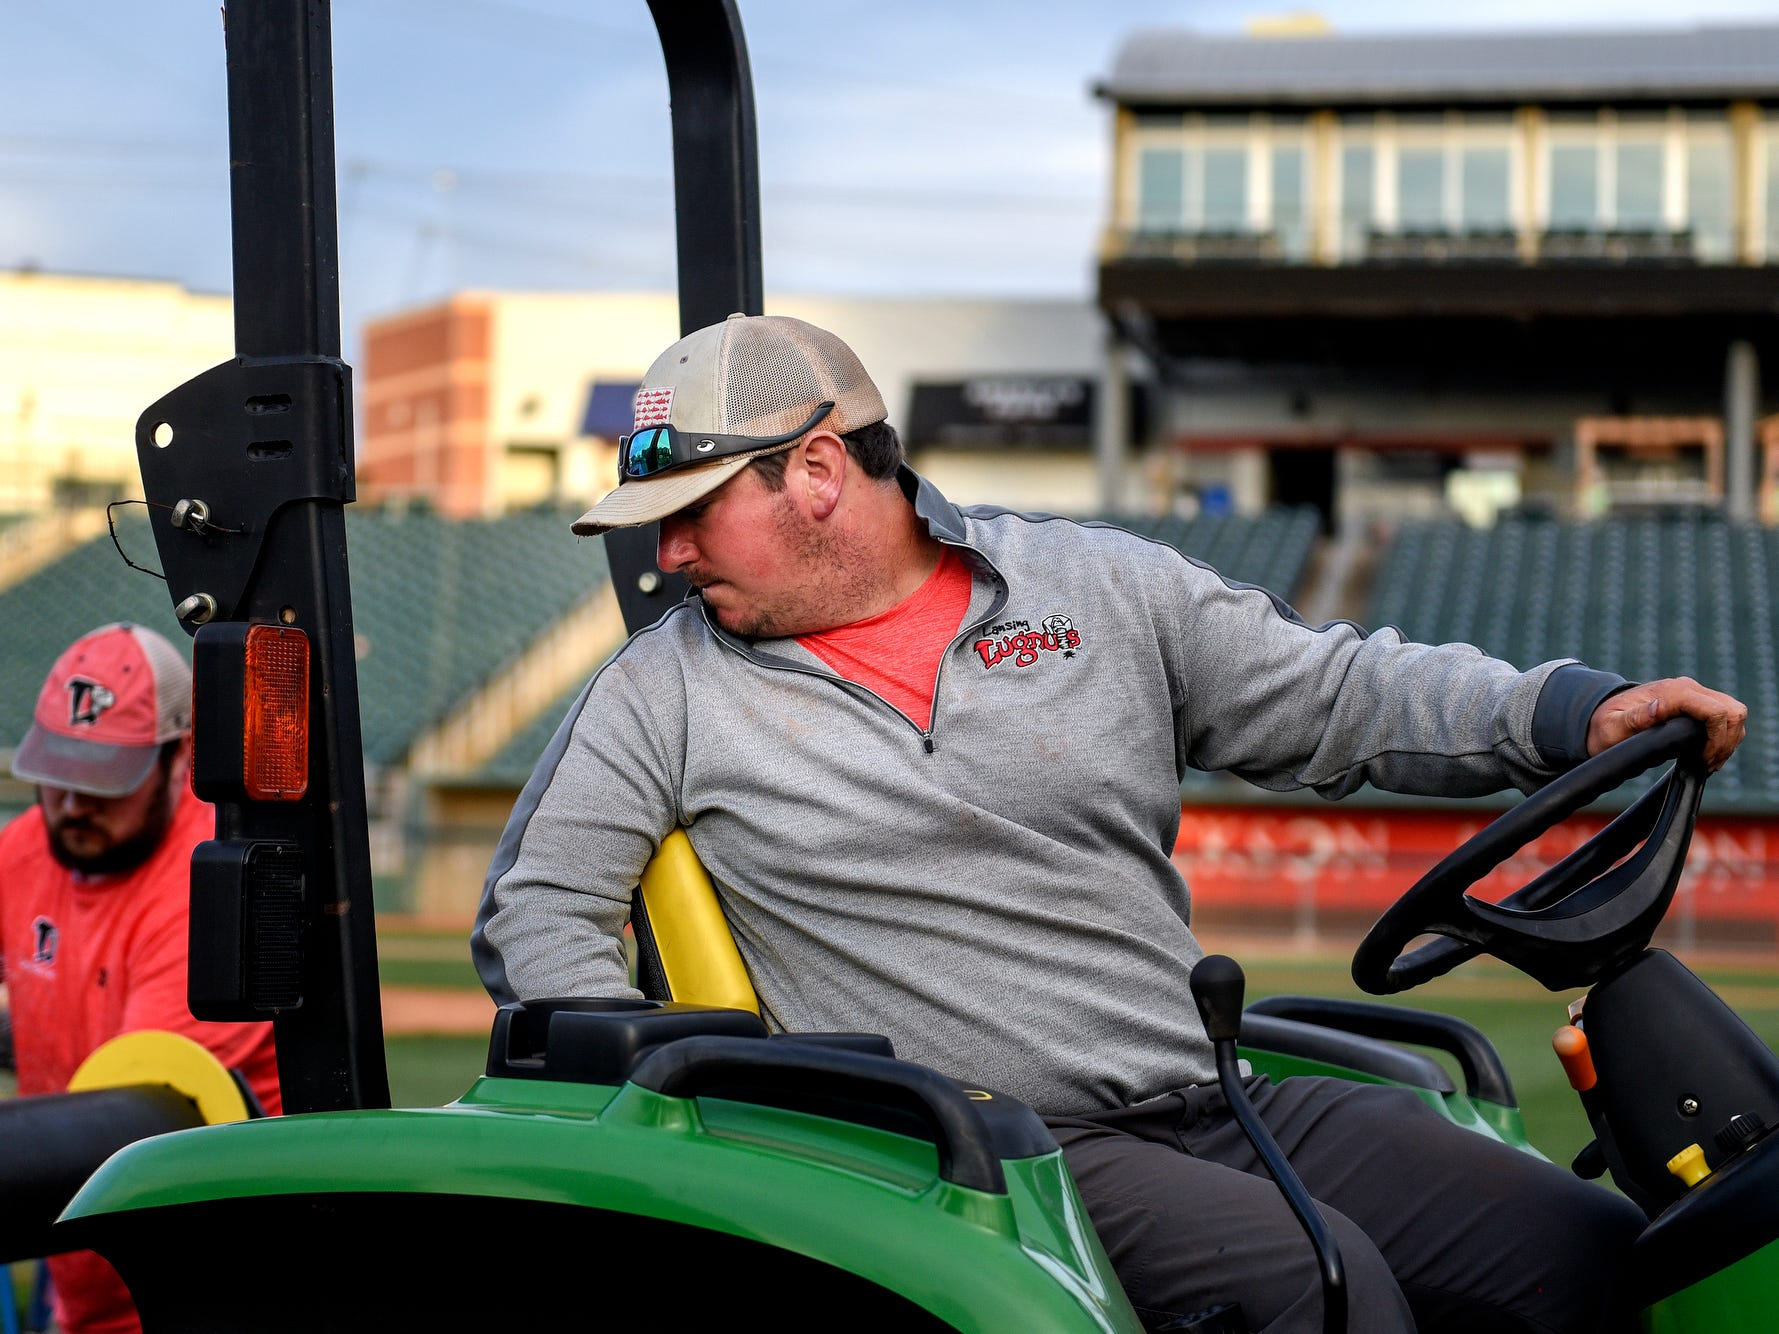 Lugnuts Head Groundskeeper Zach Severns carefully drives a tractor to unroll a spool of sod he and a crew works to turnover the baseball field for a Lansing Ignite soccer match on Wednesday, April 24, 2019, at Cooley Law School Stadium in Lansing.